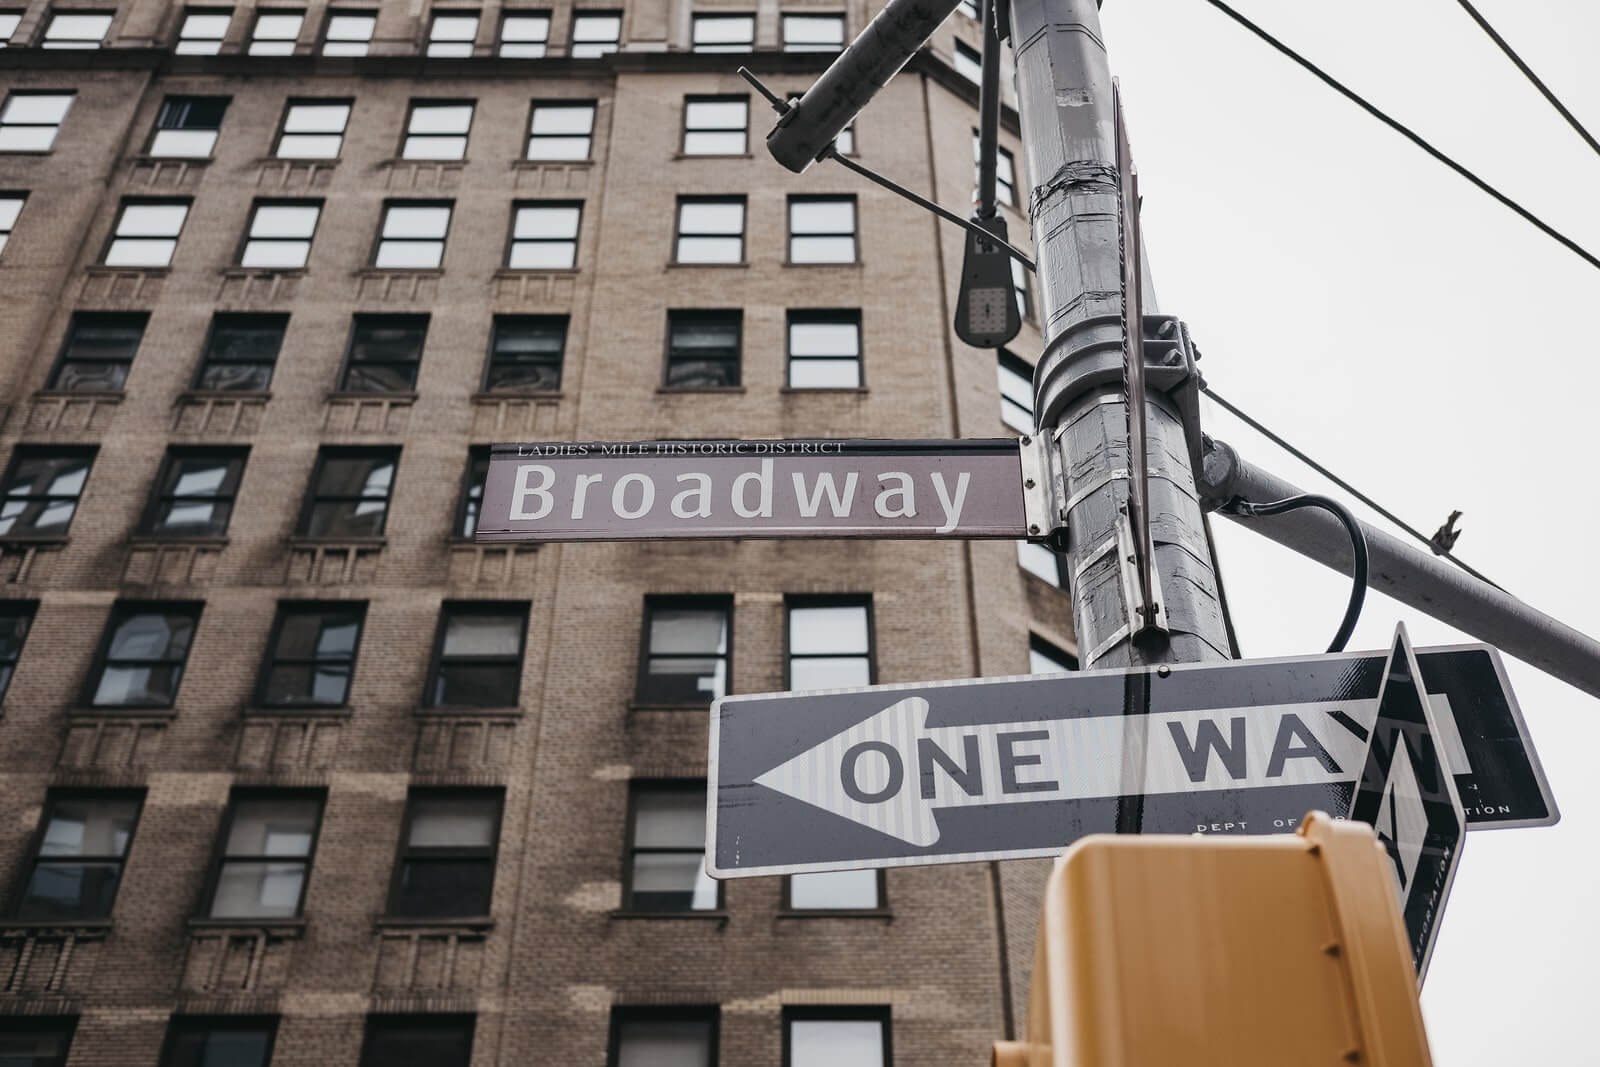 broadway-sign-new-york-city.jpg